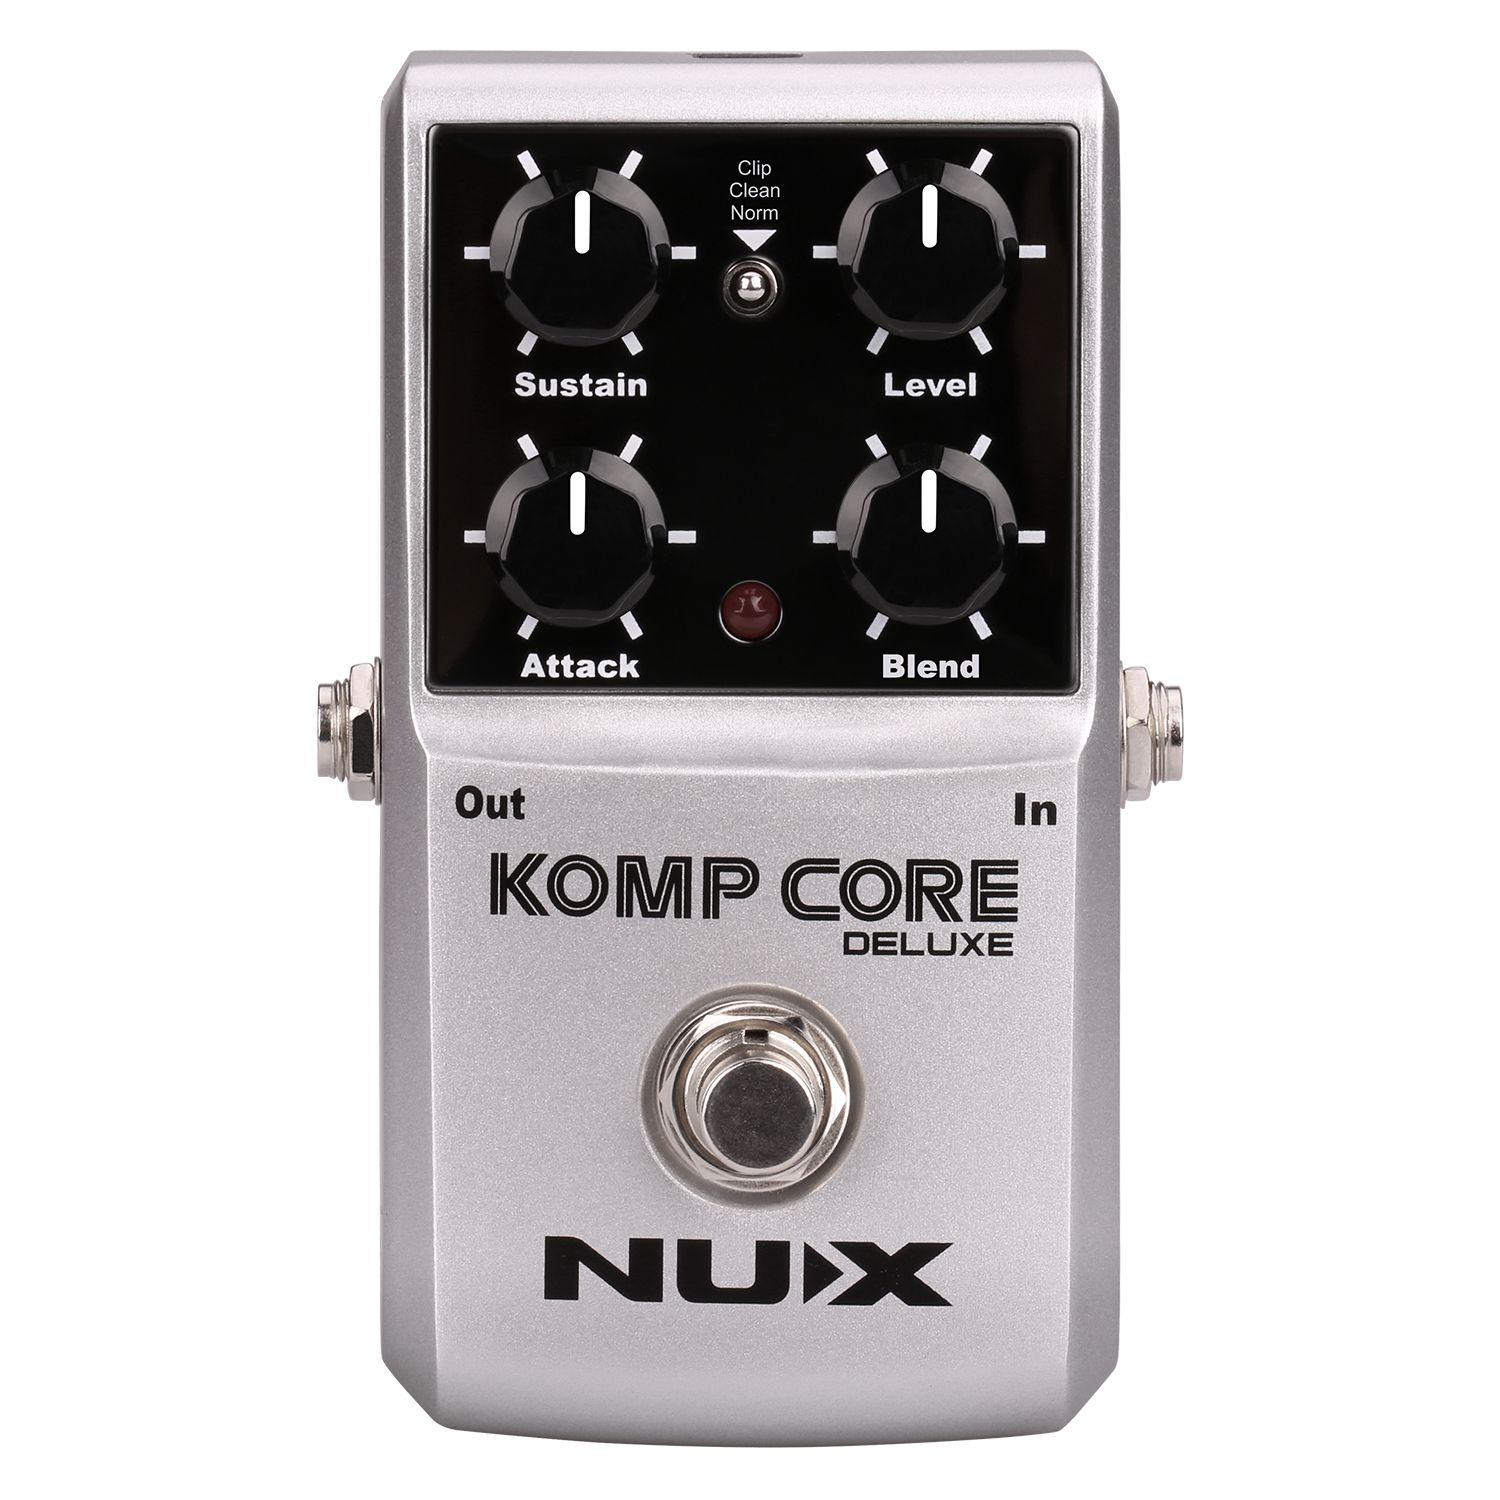 NUX Komp Core Deluxe Guitar Effects Pedal reduce the redundant dynamic ensure balanced Performance True bypassNUX Komp Core Deluxe Guitar Effects Pedal reduce the redundant dynamic ensure balanced Performance True bypass